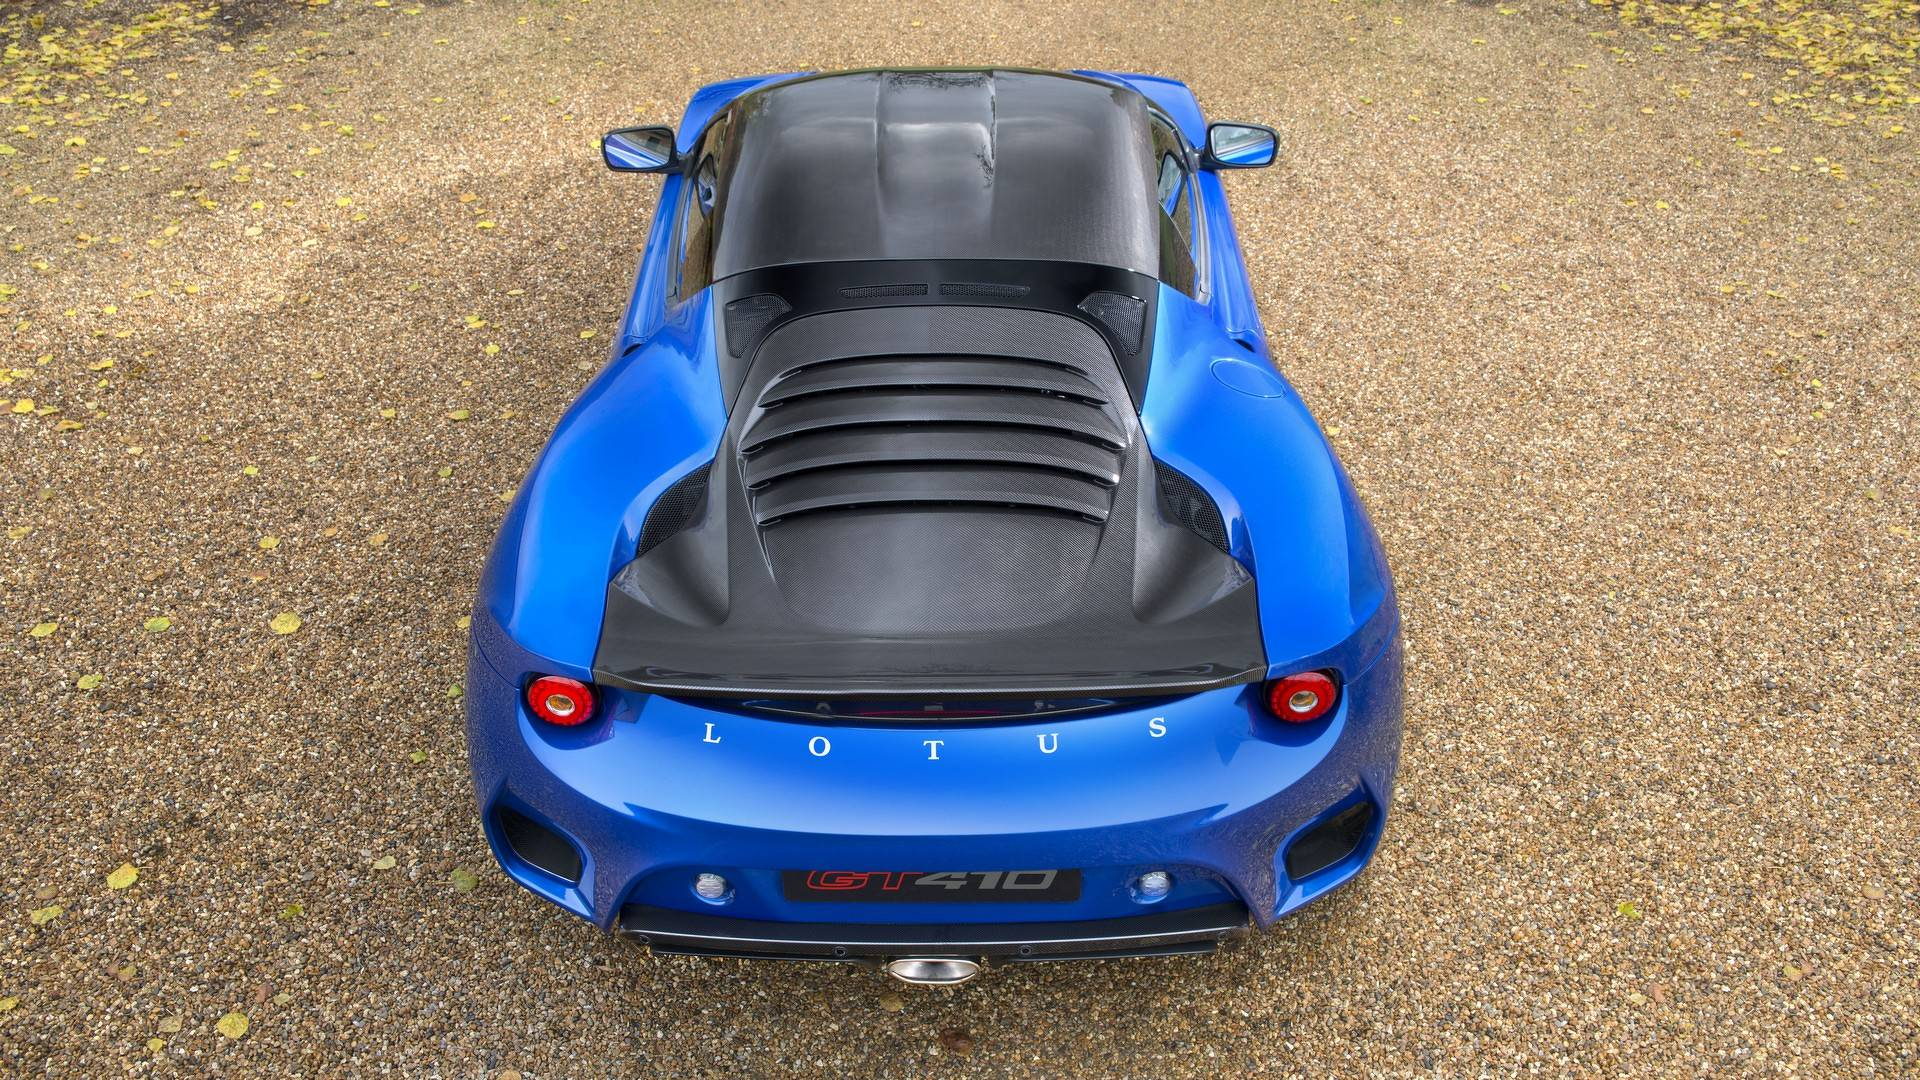 Lotus Plans Two New Sports Cars For 2020, SUV Also In The Pipeline - autoevolution